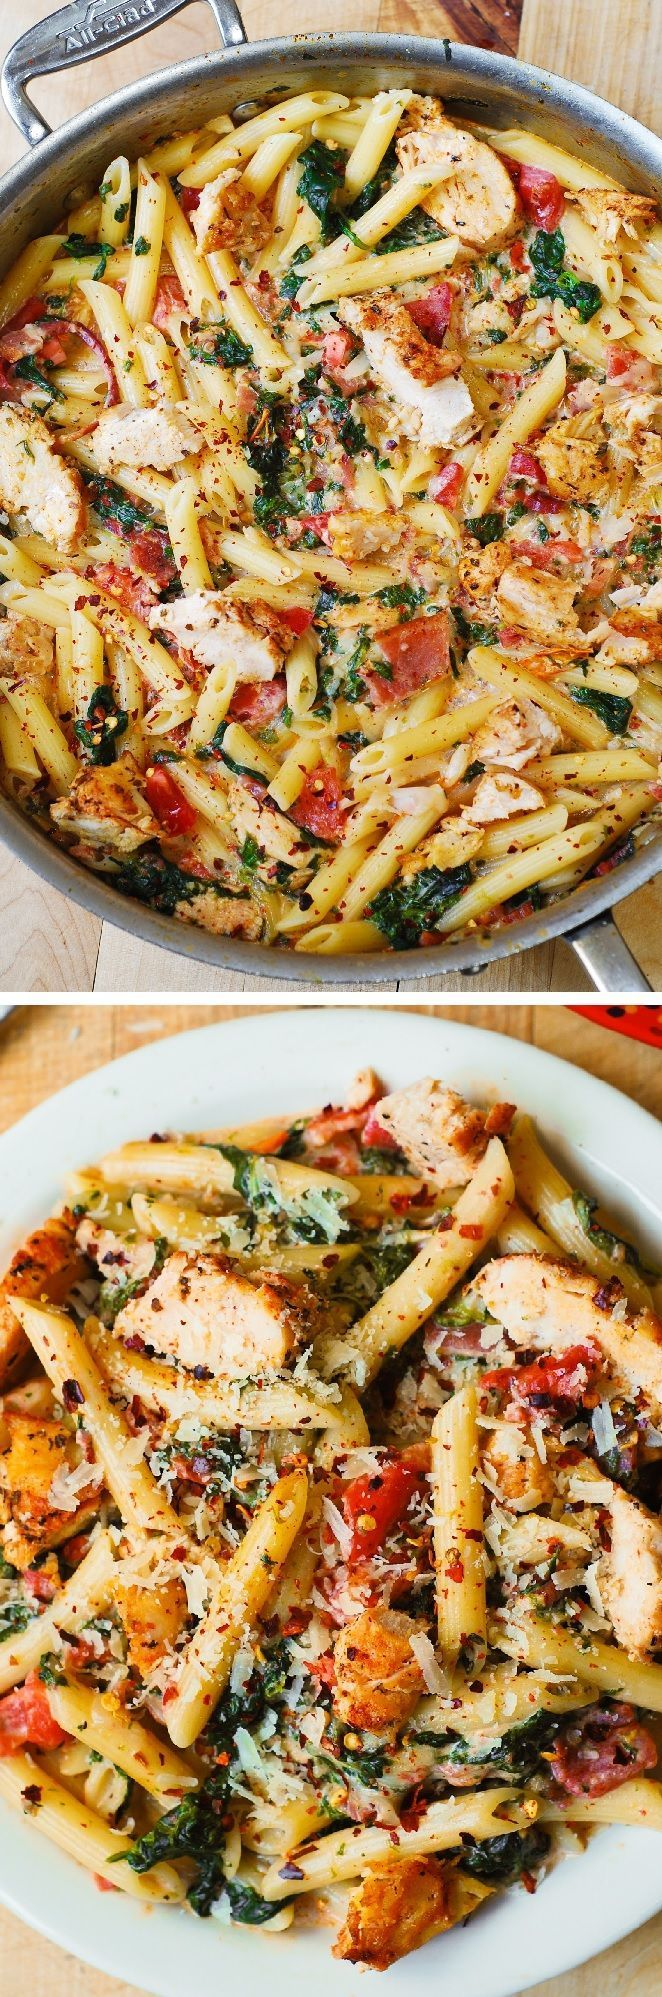 Chicken and Bacon Pasta with Spinach and Tomatoes in Garlic Cream Sauce ~ Serve this festive and appetising chicken and bacon pasta with spinach and tomatoes in garlic sauce for a dinner this time, and you will see how much tastiness is added with such a simple set of ingredients!